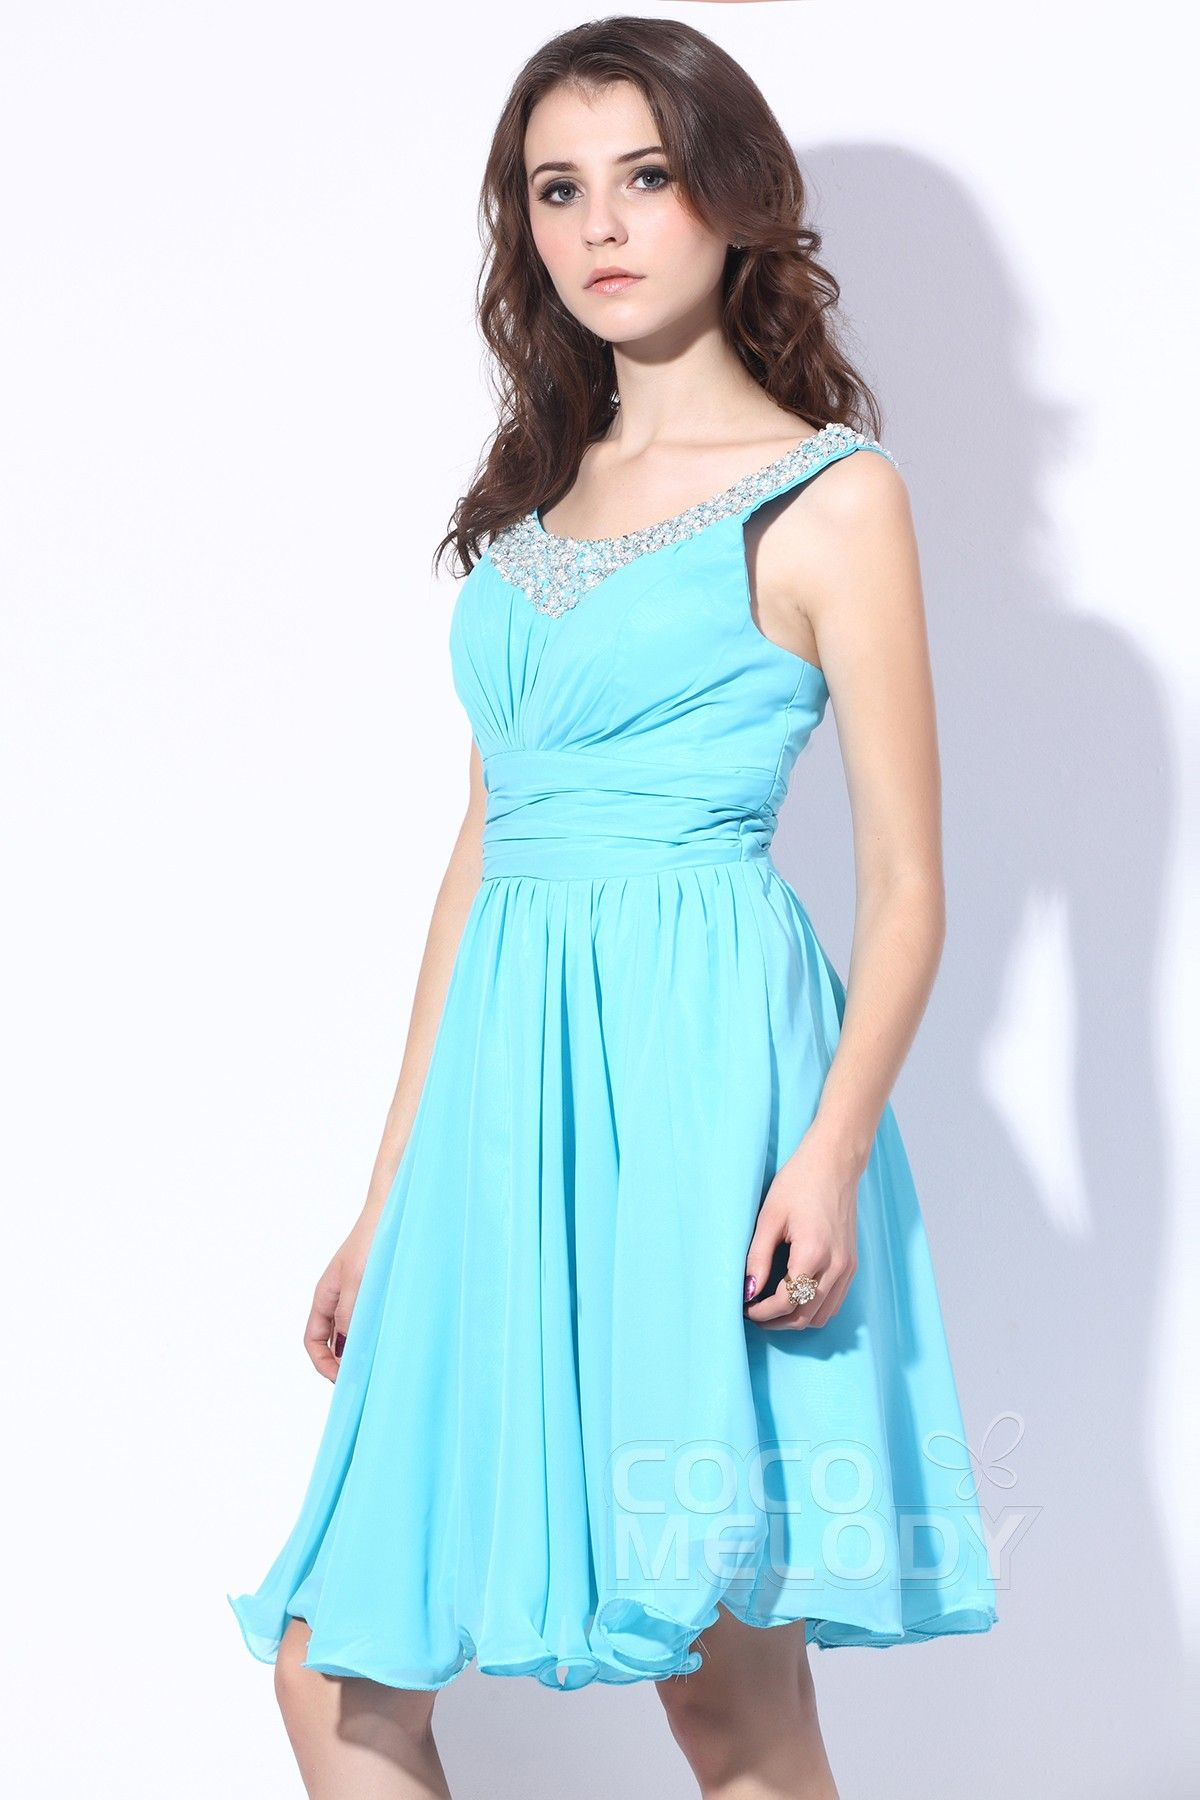 Fancy A-Line Scoop Knee Length Chiffon Sky Blue Party Dress with Beading COZK13005 #bridesmaiddress #cocomelody